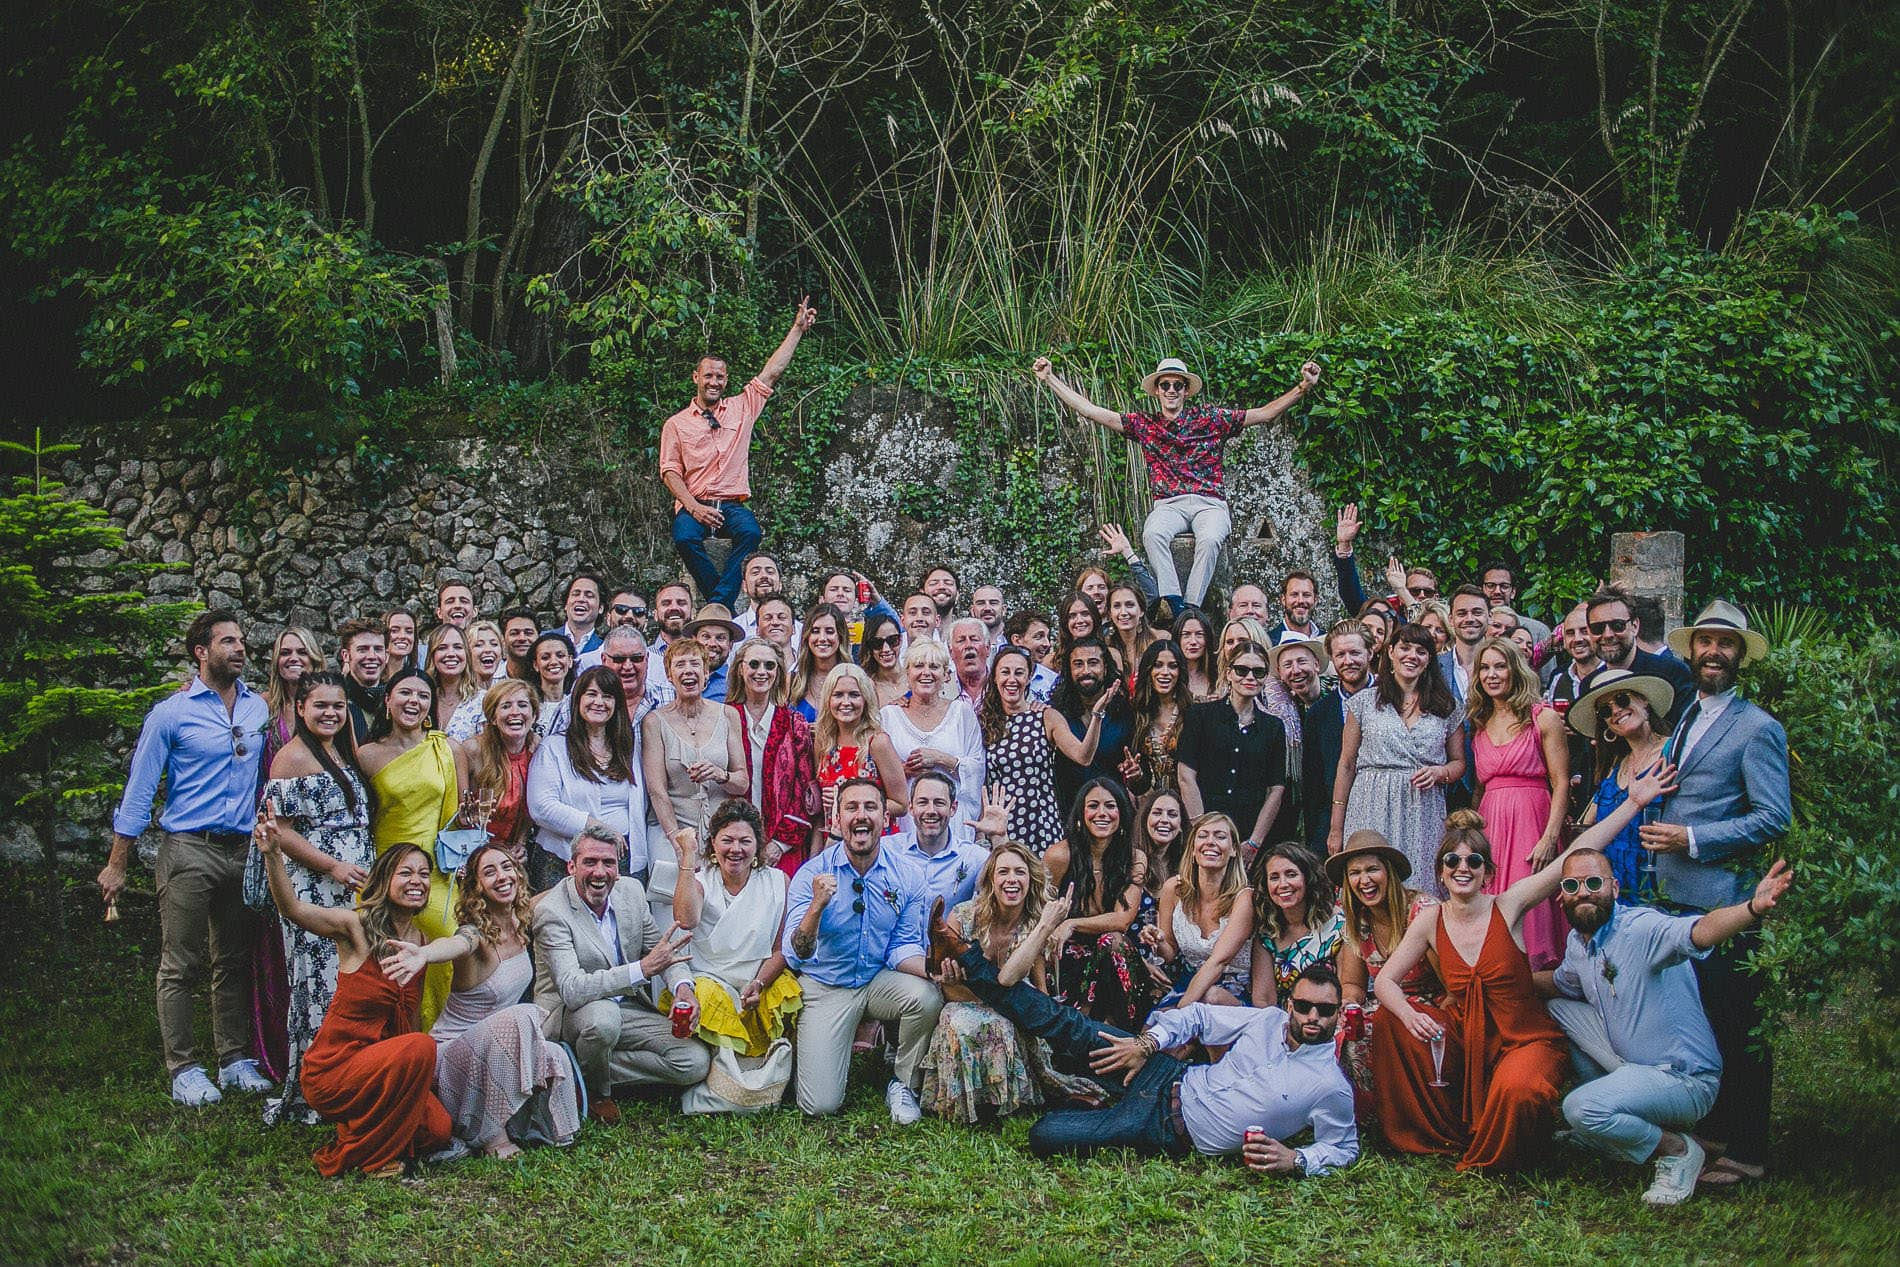 group shot of all the wedding guest